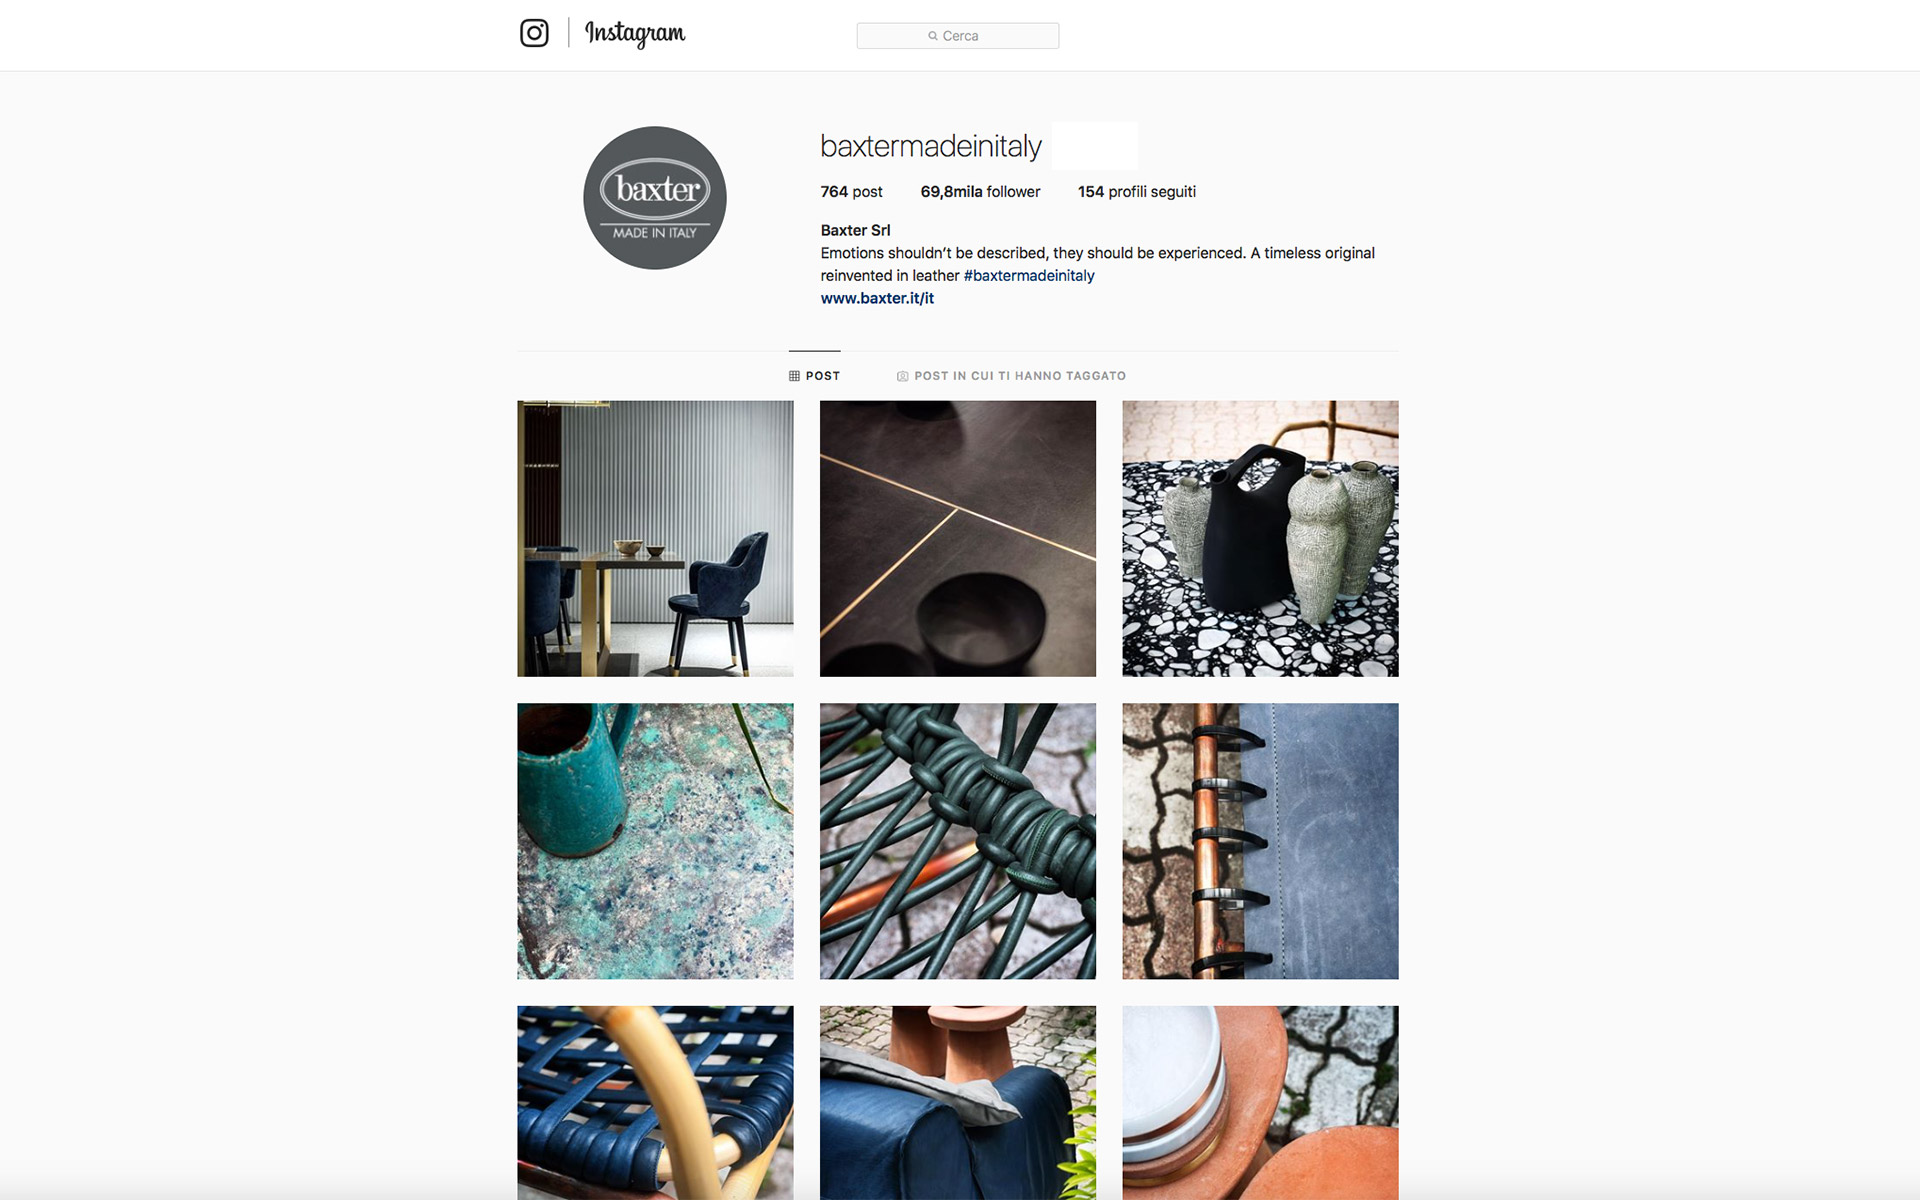 5 INSTAGRAM PROFILES SUGGESTED TO DESIGN LOVERS